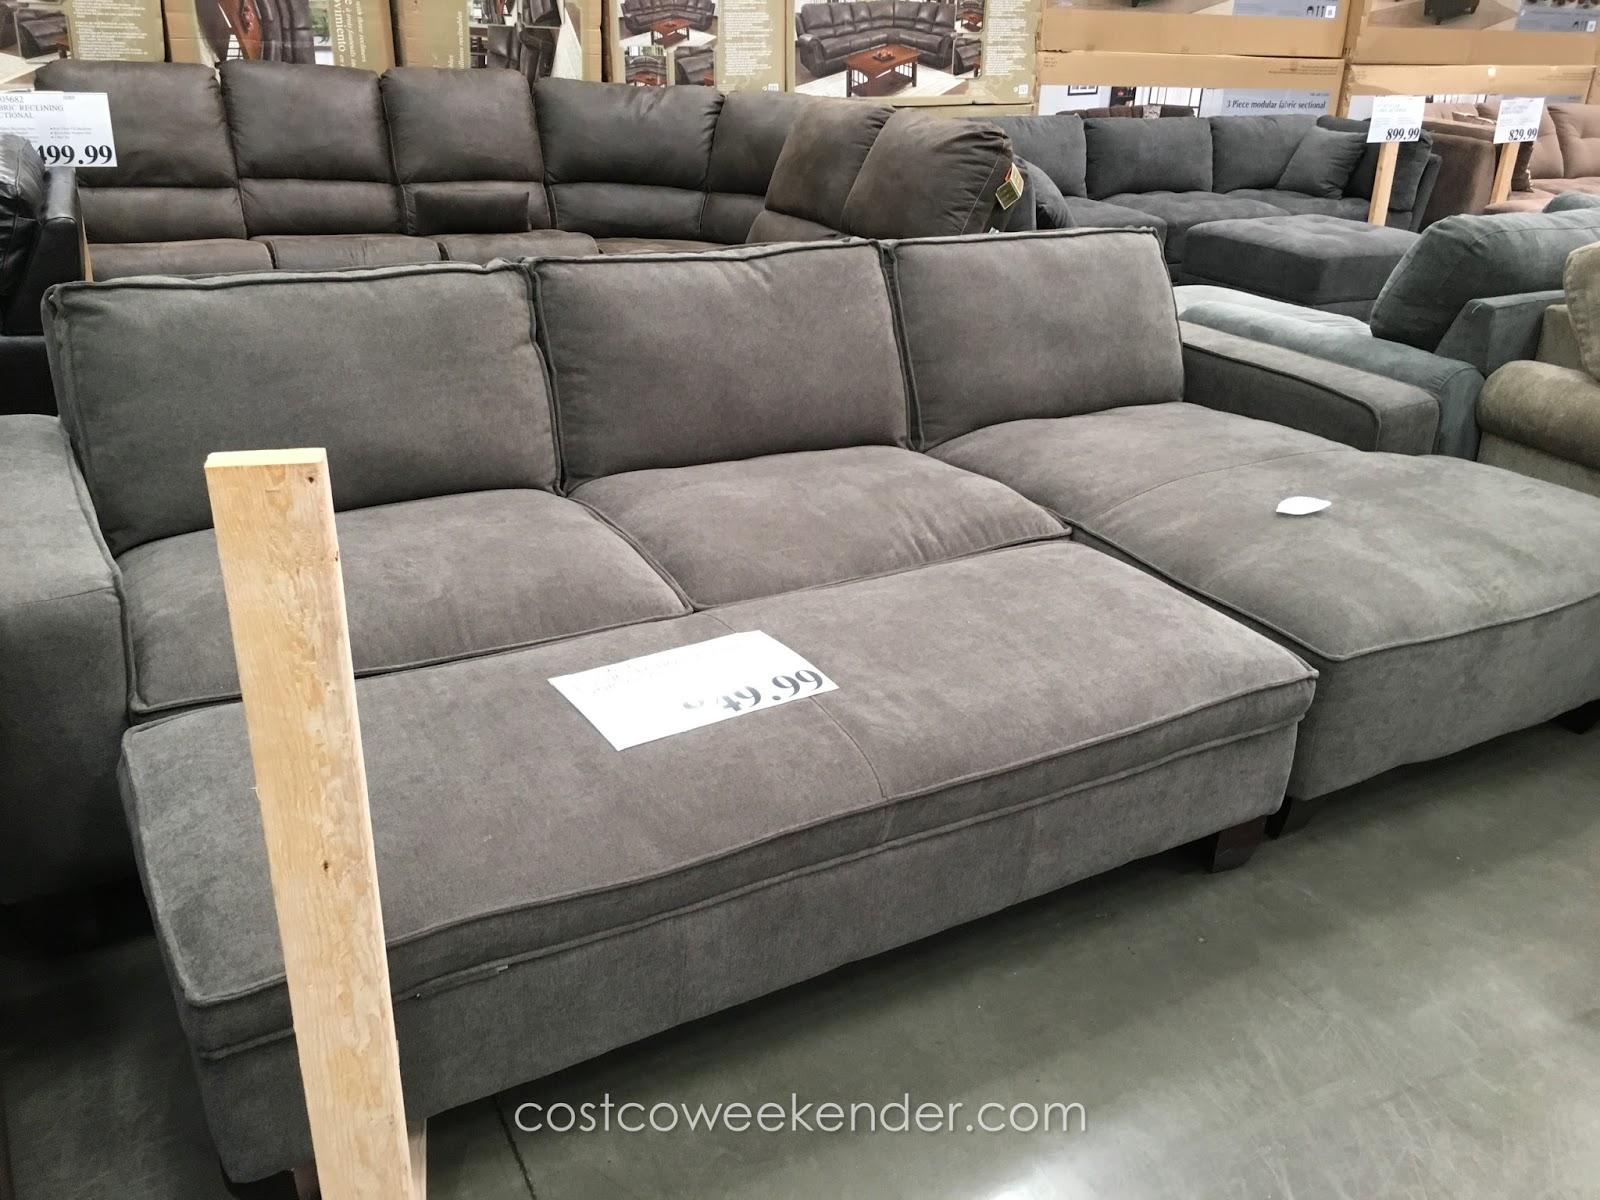 Chaise Sectional Sofa With Storage Ottoman  Costco Weekender. Home Good Chairs. Firewood Holder. Bookshelf Decor. Gray Ceiling Fan. Rustic Full Size Bed. Steamer Trunk. Upholstered Swivel Chair. Coffee Table With Wheels